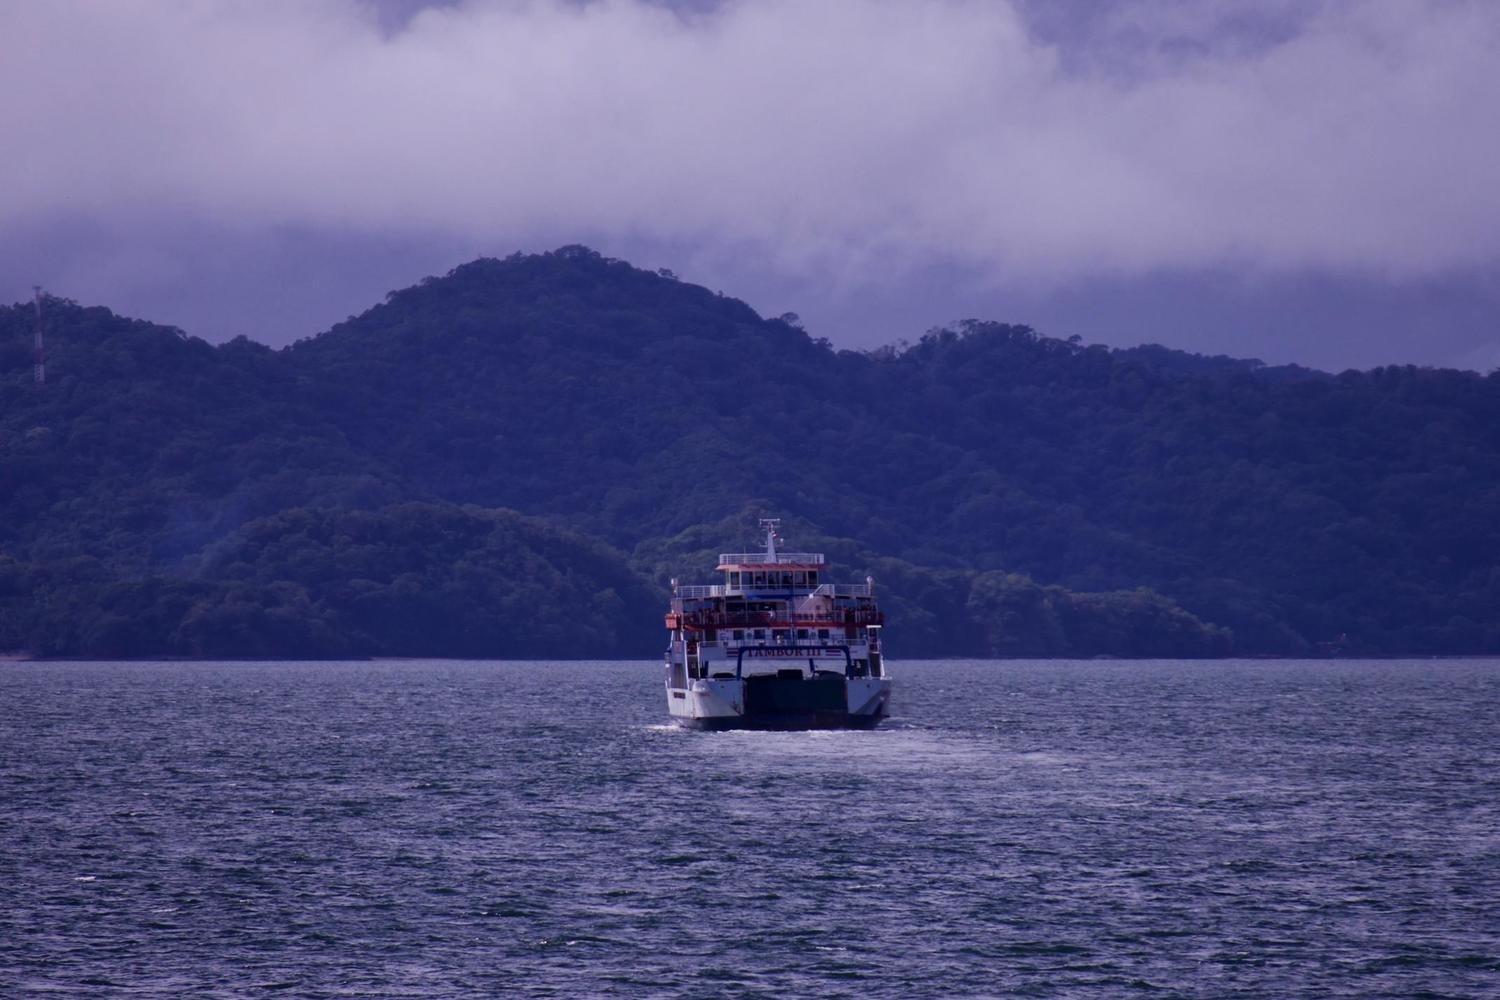 Ferry across the Gulf of Nicoya